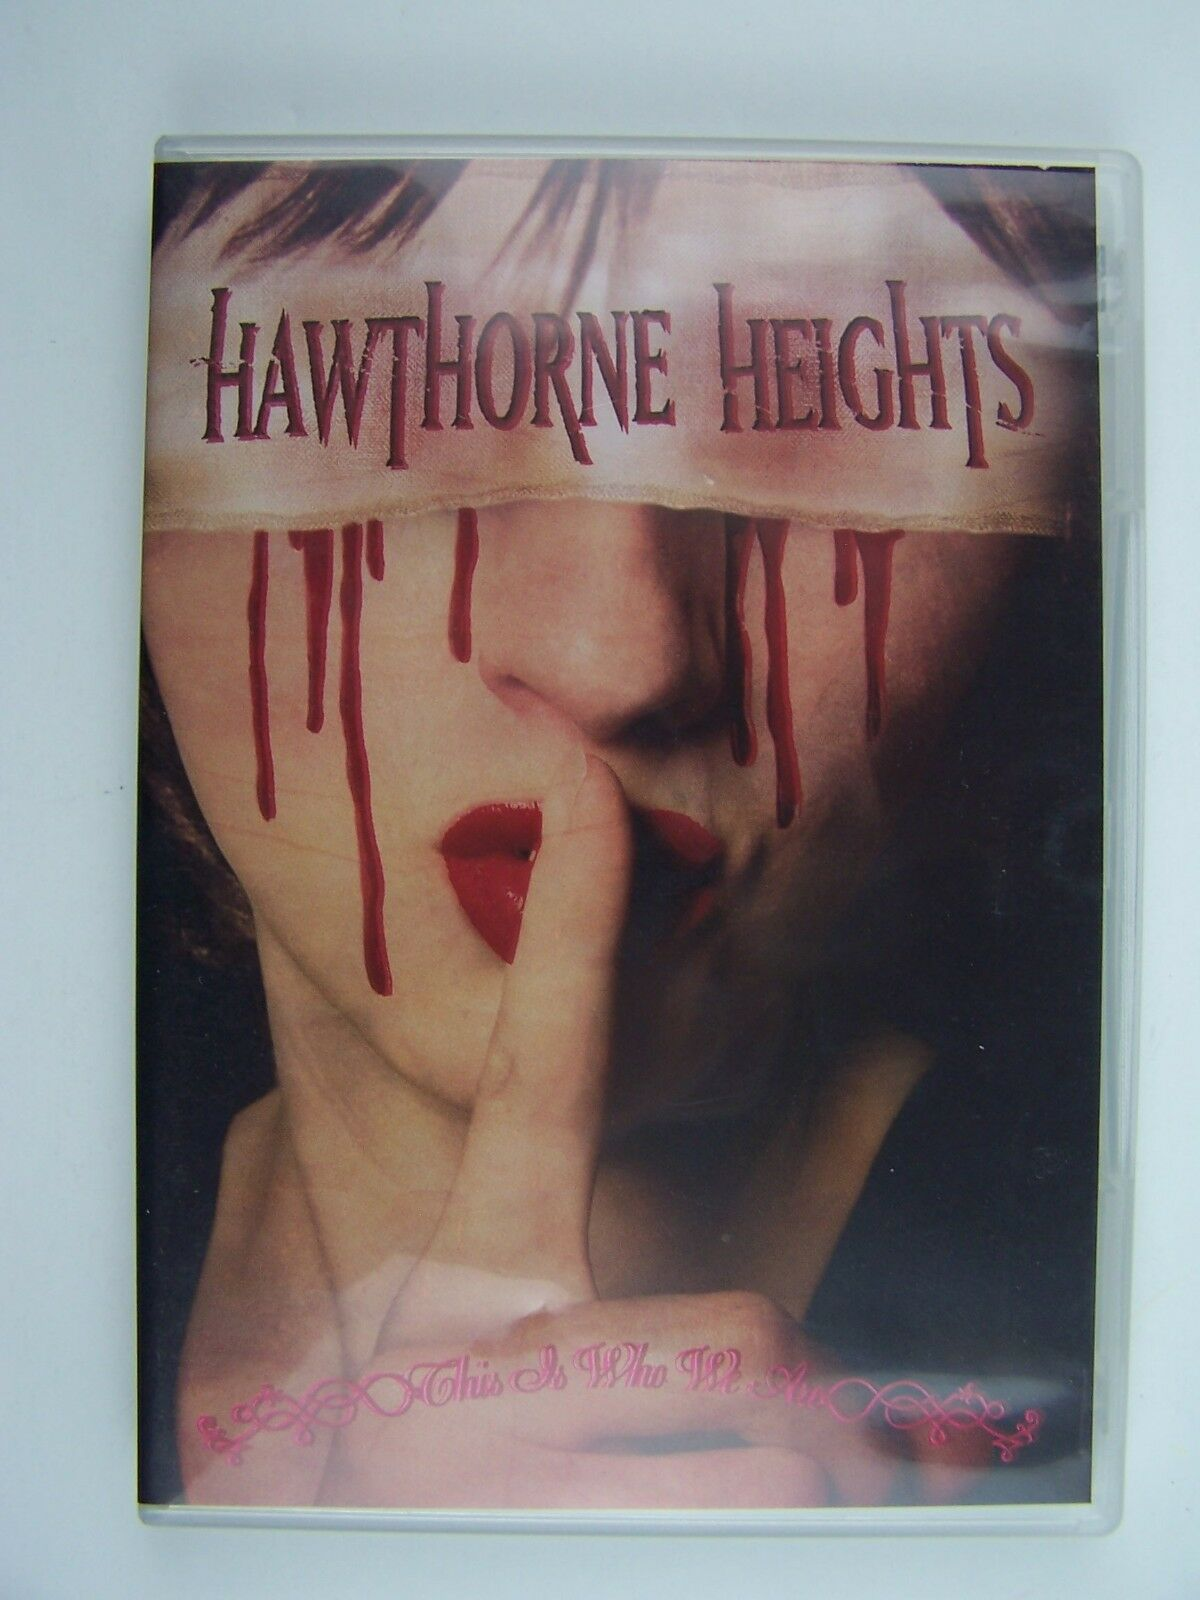 Hawthorne Heights This Is Who We Are DVD 746105028890